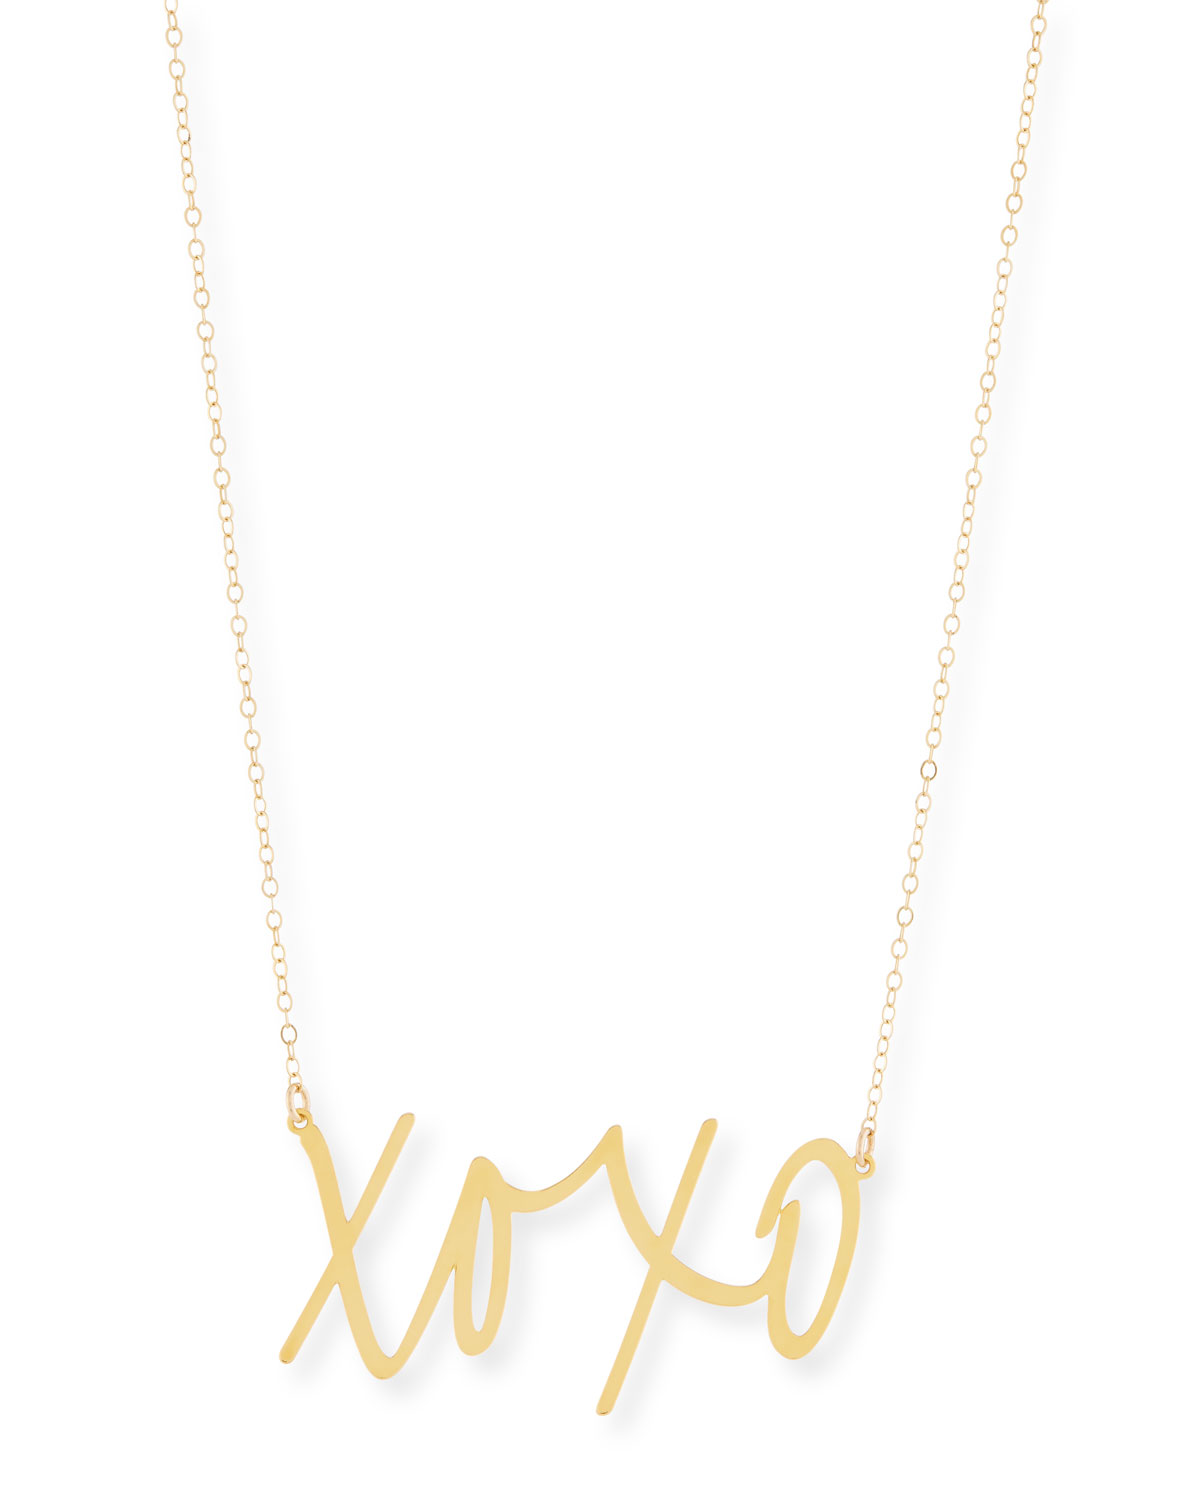 Brevity XOXO Large Pendant Necklace